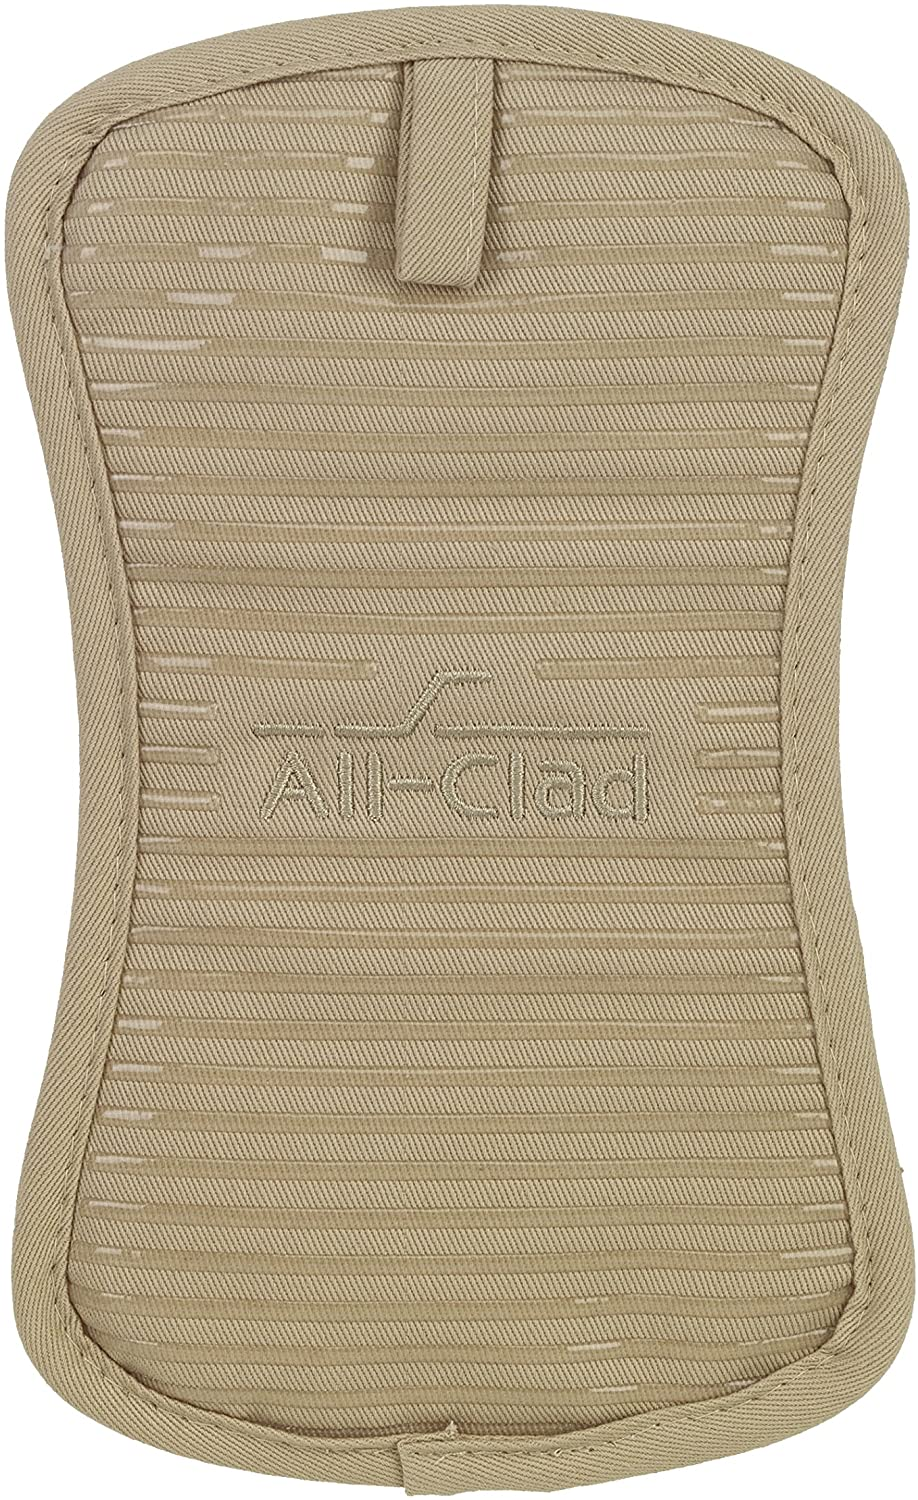 All-Clad Textiles Deluxe Heat and Stain Resistant Pot Holder. Silicone Treated Heavyweight 100-Percent Cotton Twill Hot Pad, Machine Washable, 6-inches by 10-inches, Cappuccino Brown